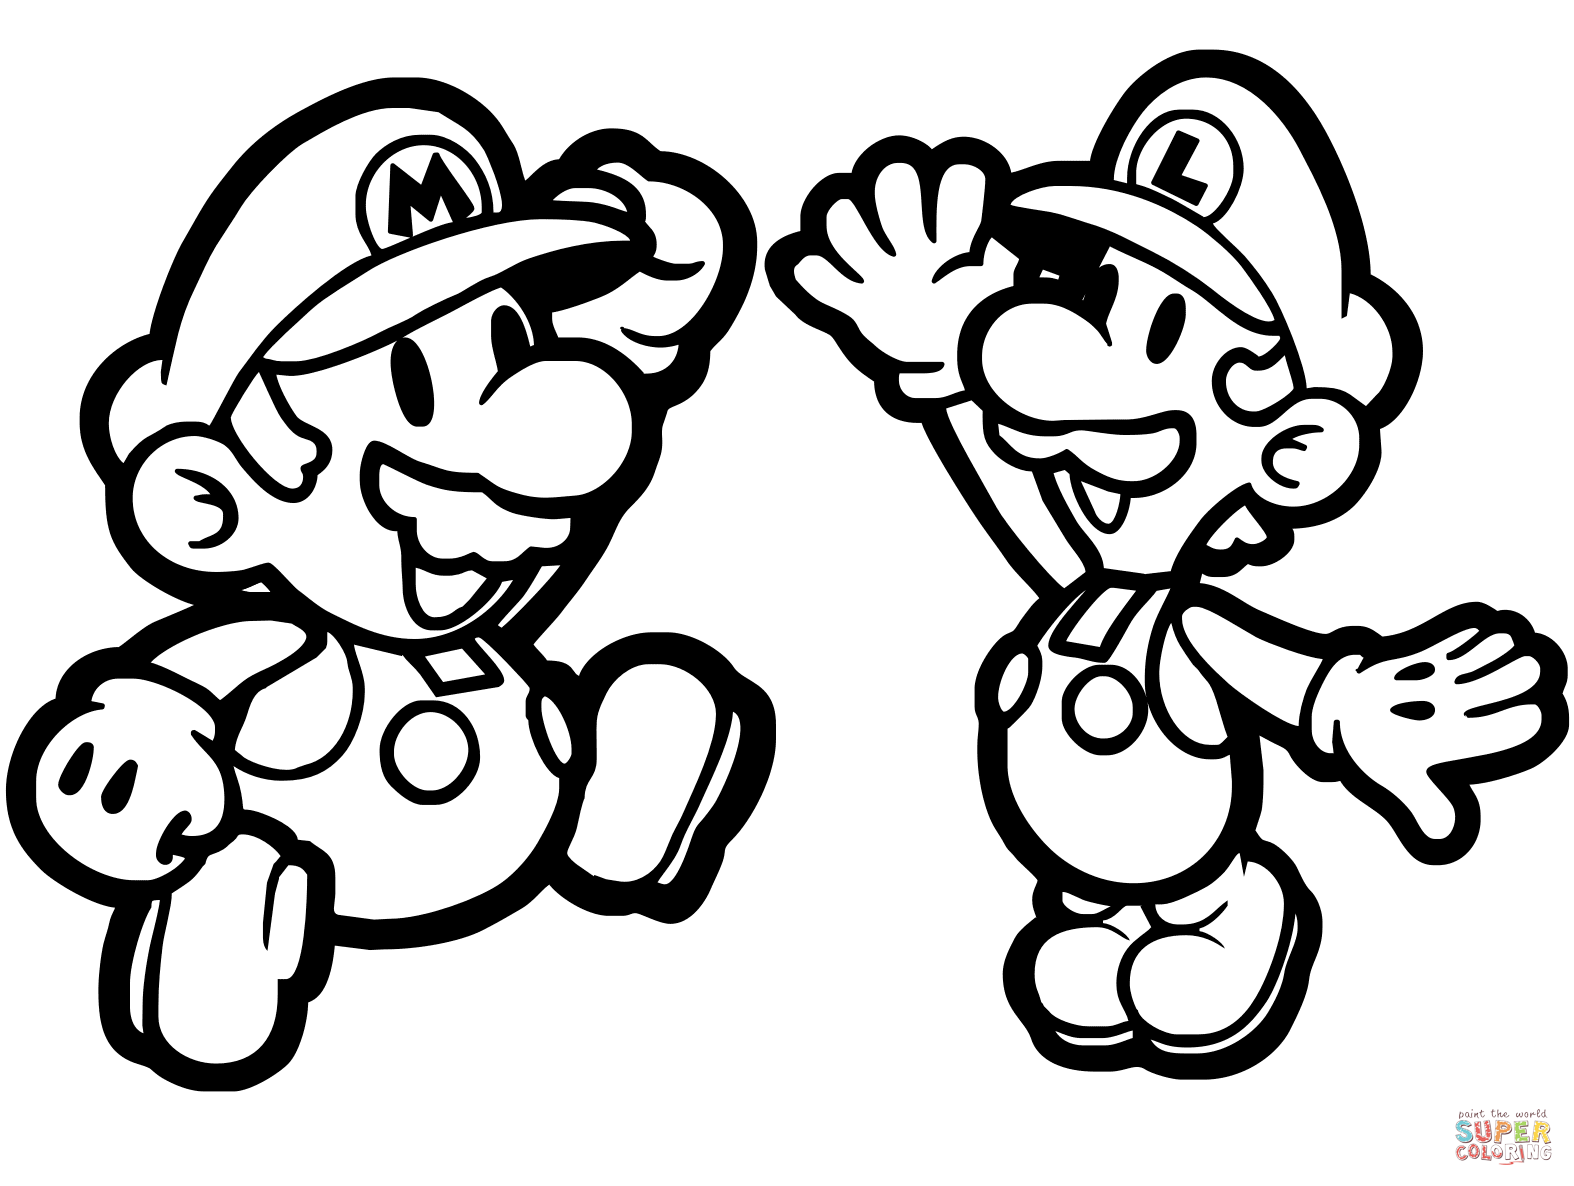 Easy Mario Drawing at GetDrawings.com | Free for personal use Easy ...